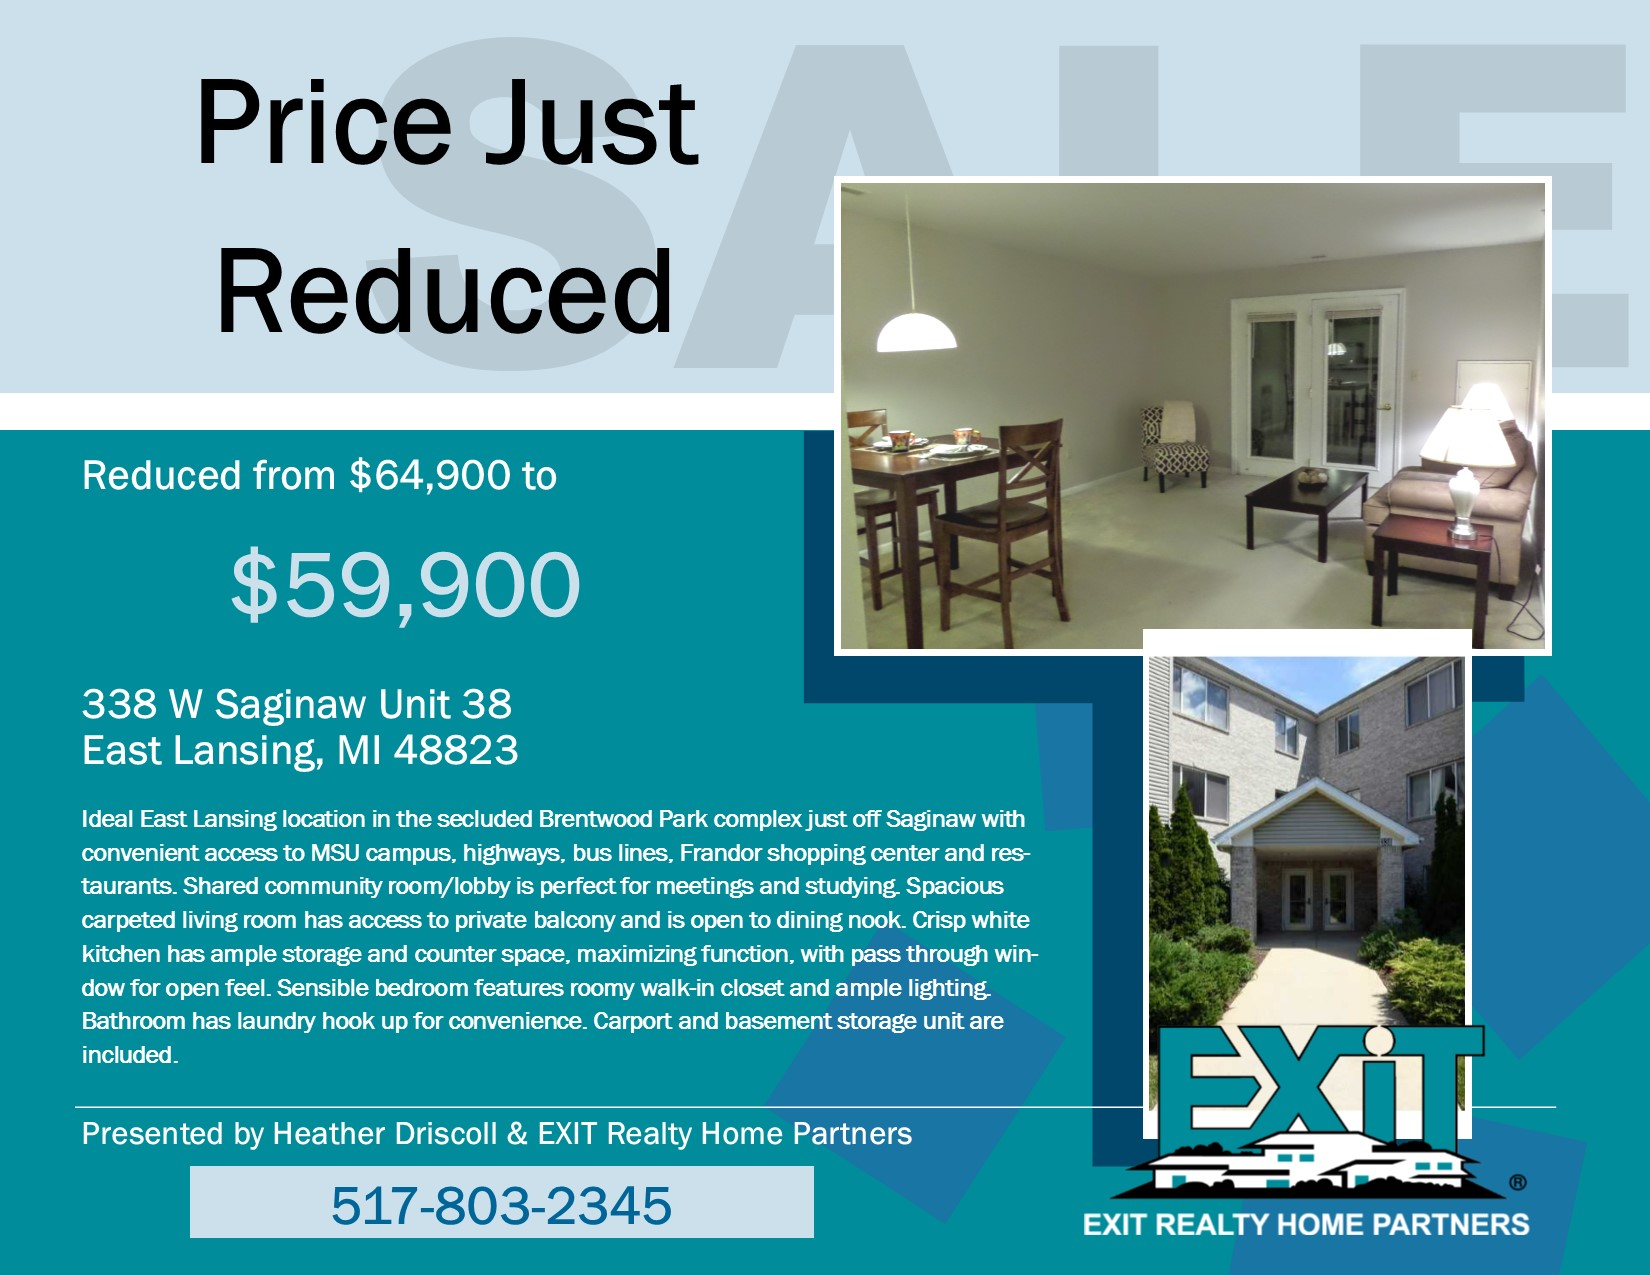 Price Just Reduced - 338 W Saginaw Unit 38